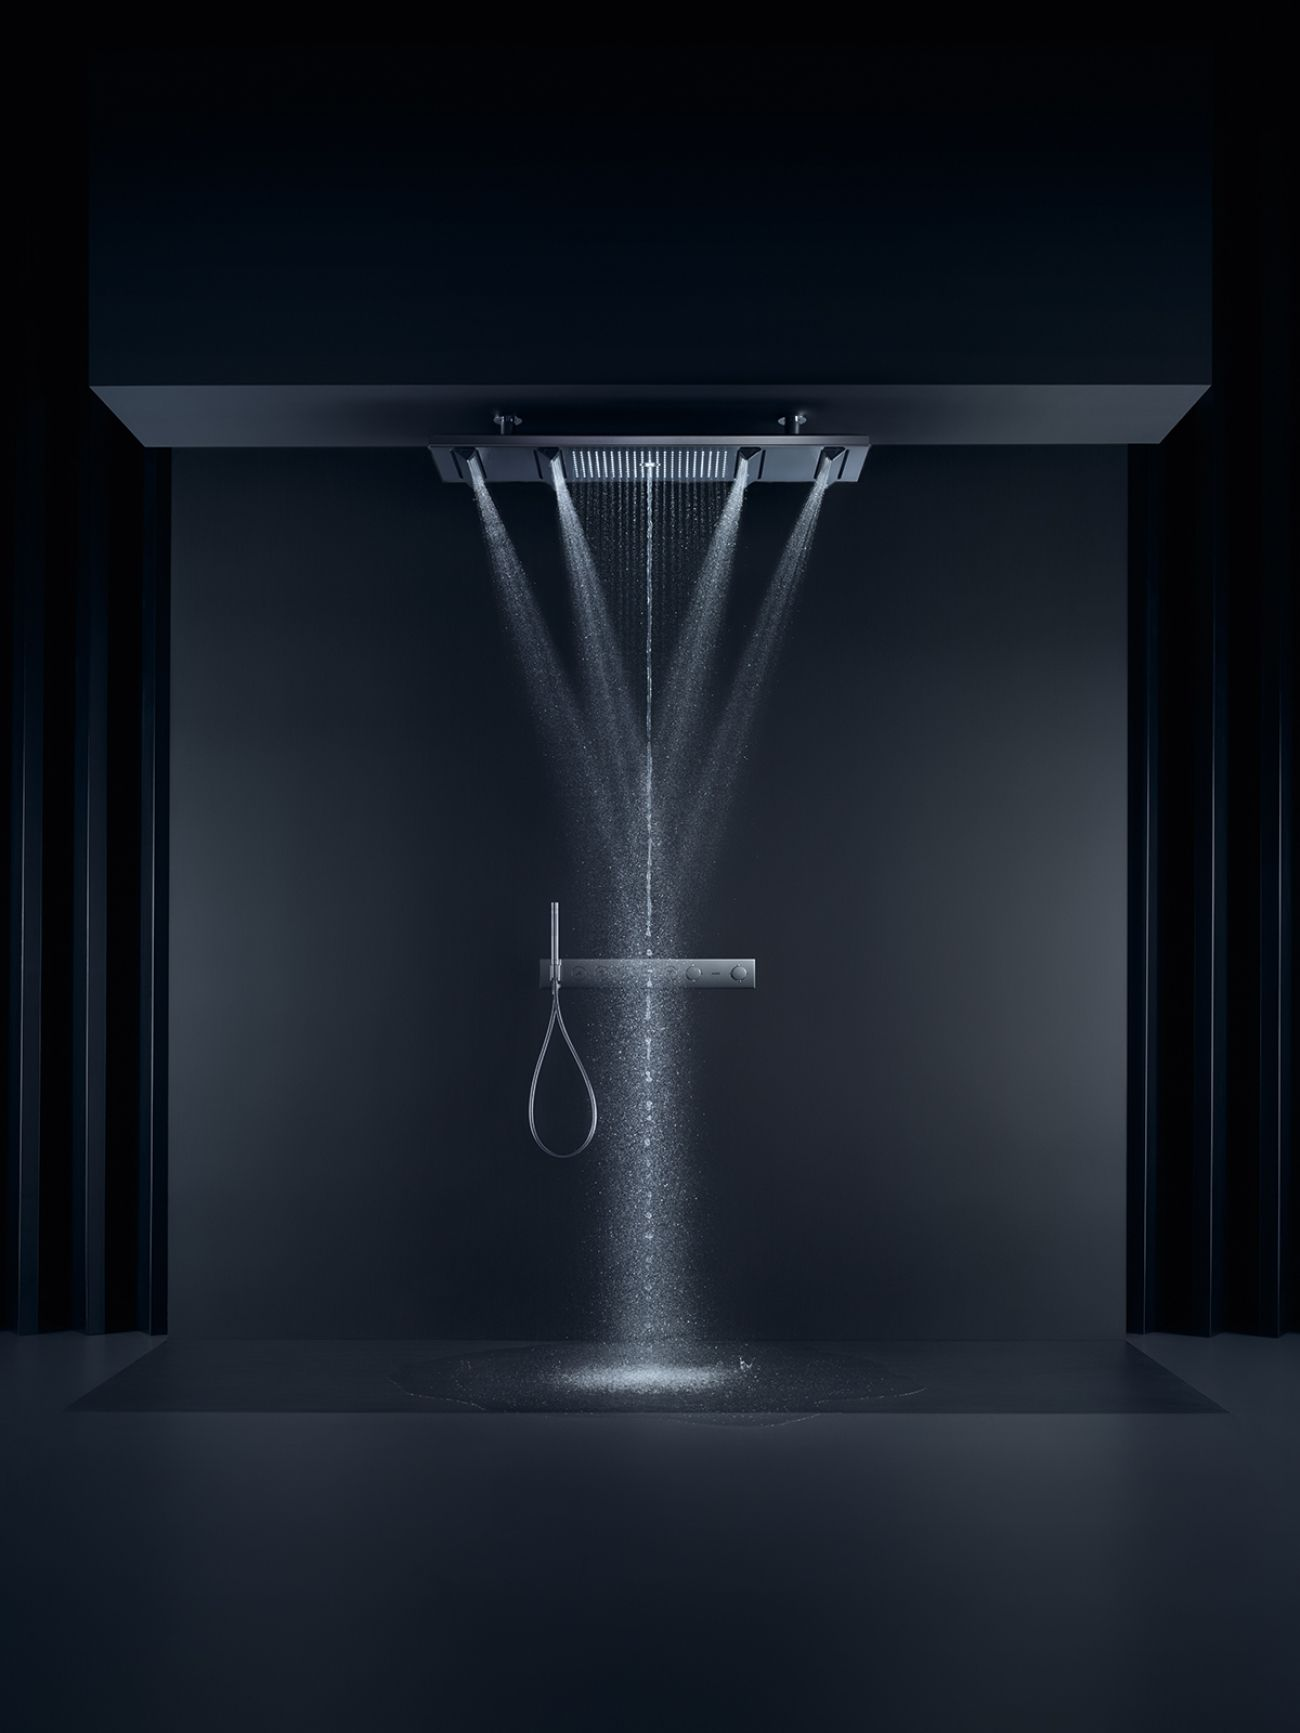 AXOR ShowerHeaven 1200 / 300 4jet | Bathroom | Pinterest